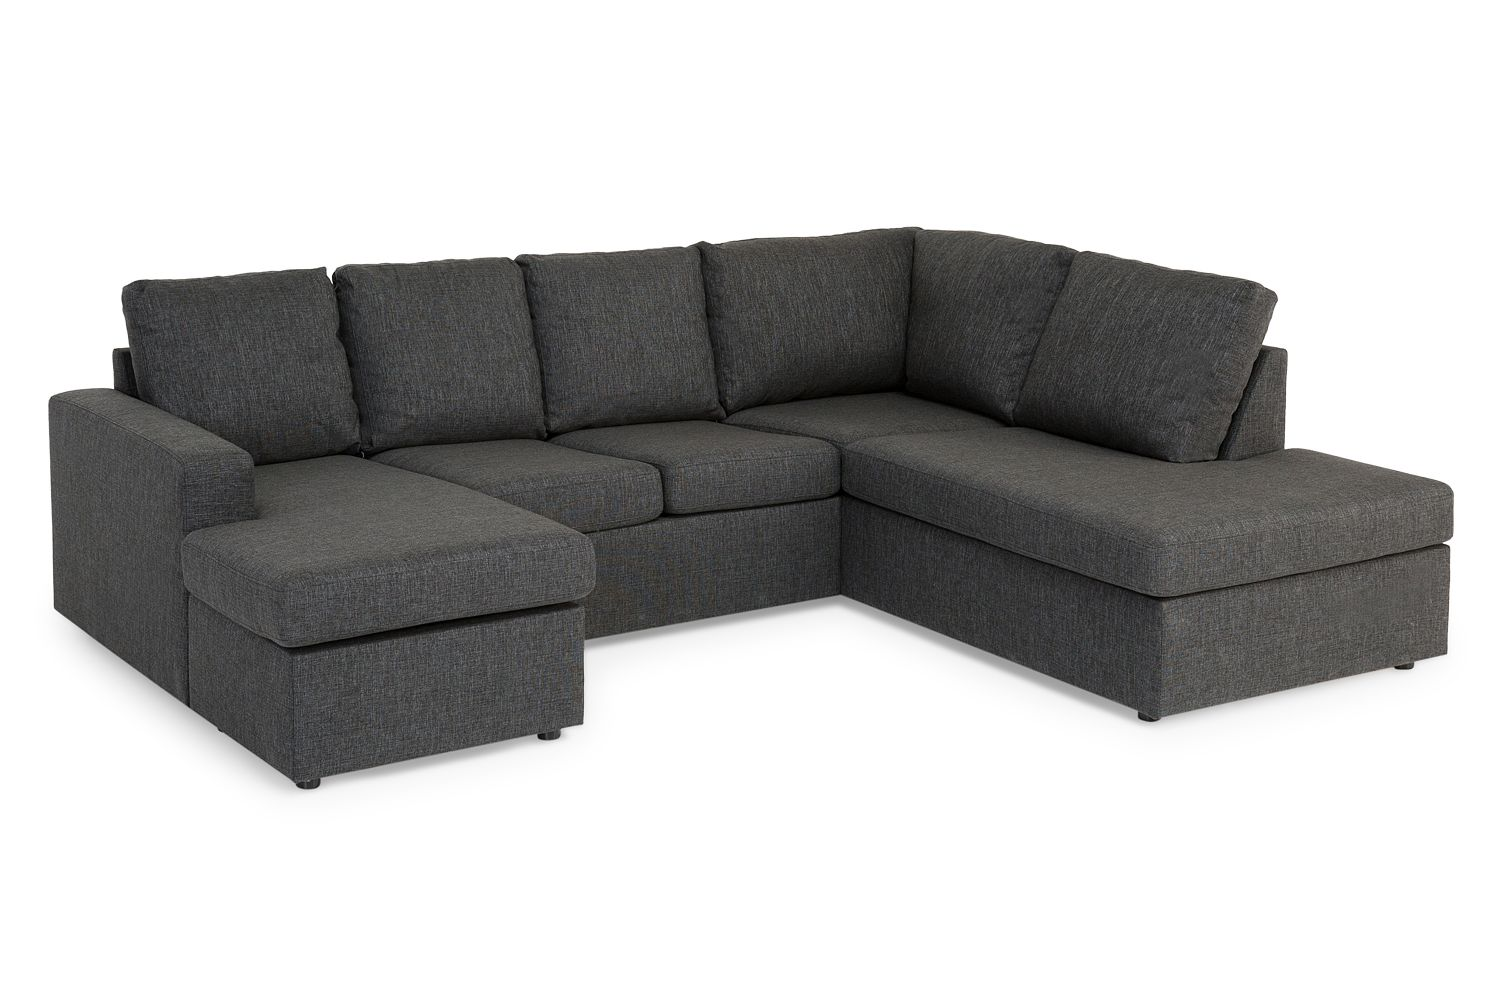 5 fantastiske sofaer til under 5000 kroner rom123. Black Bedroom Furniture Sets. Home Design Ideas